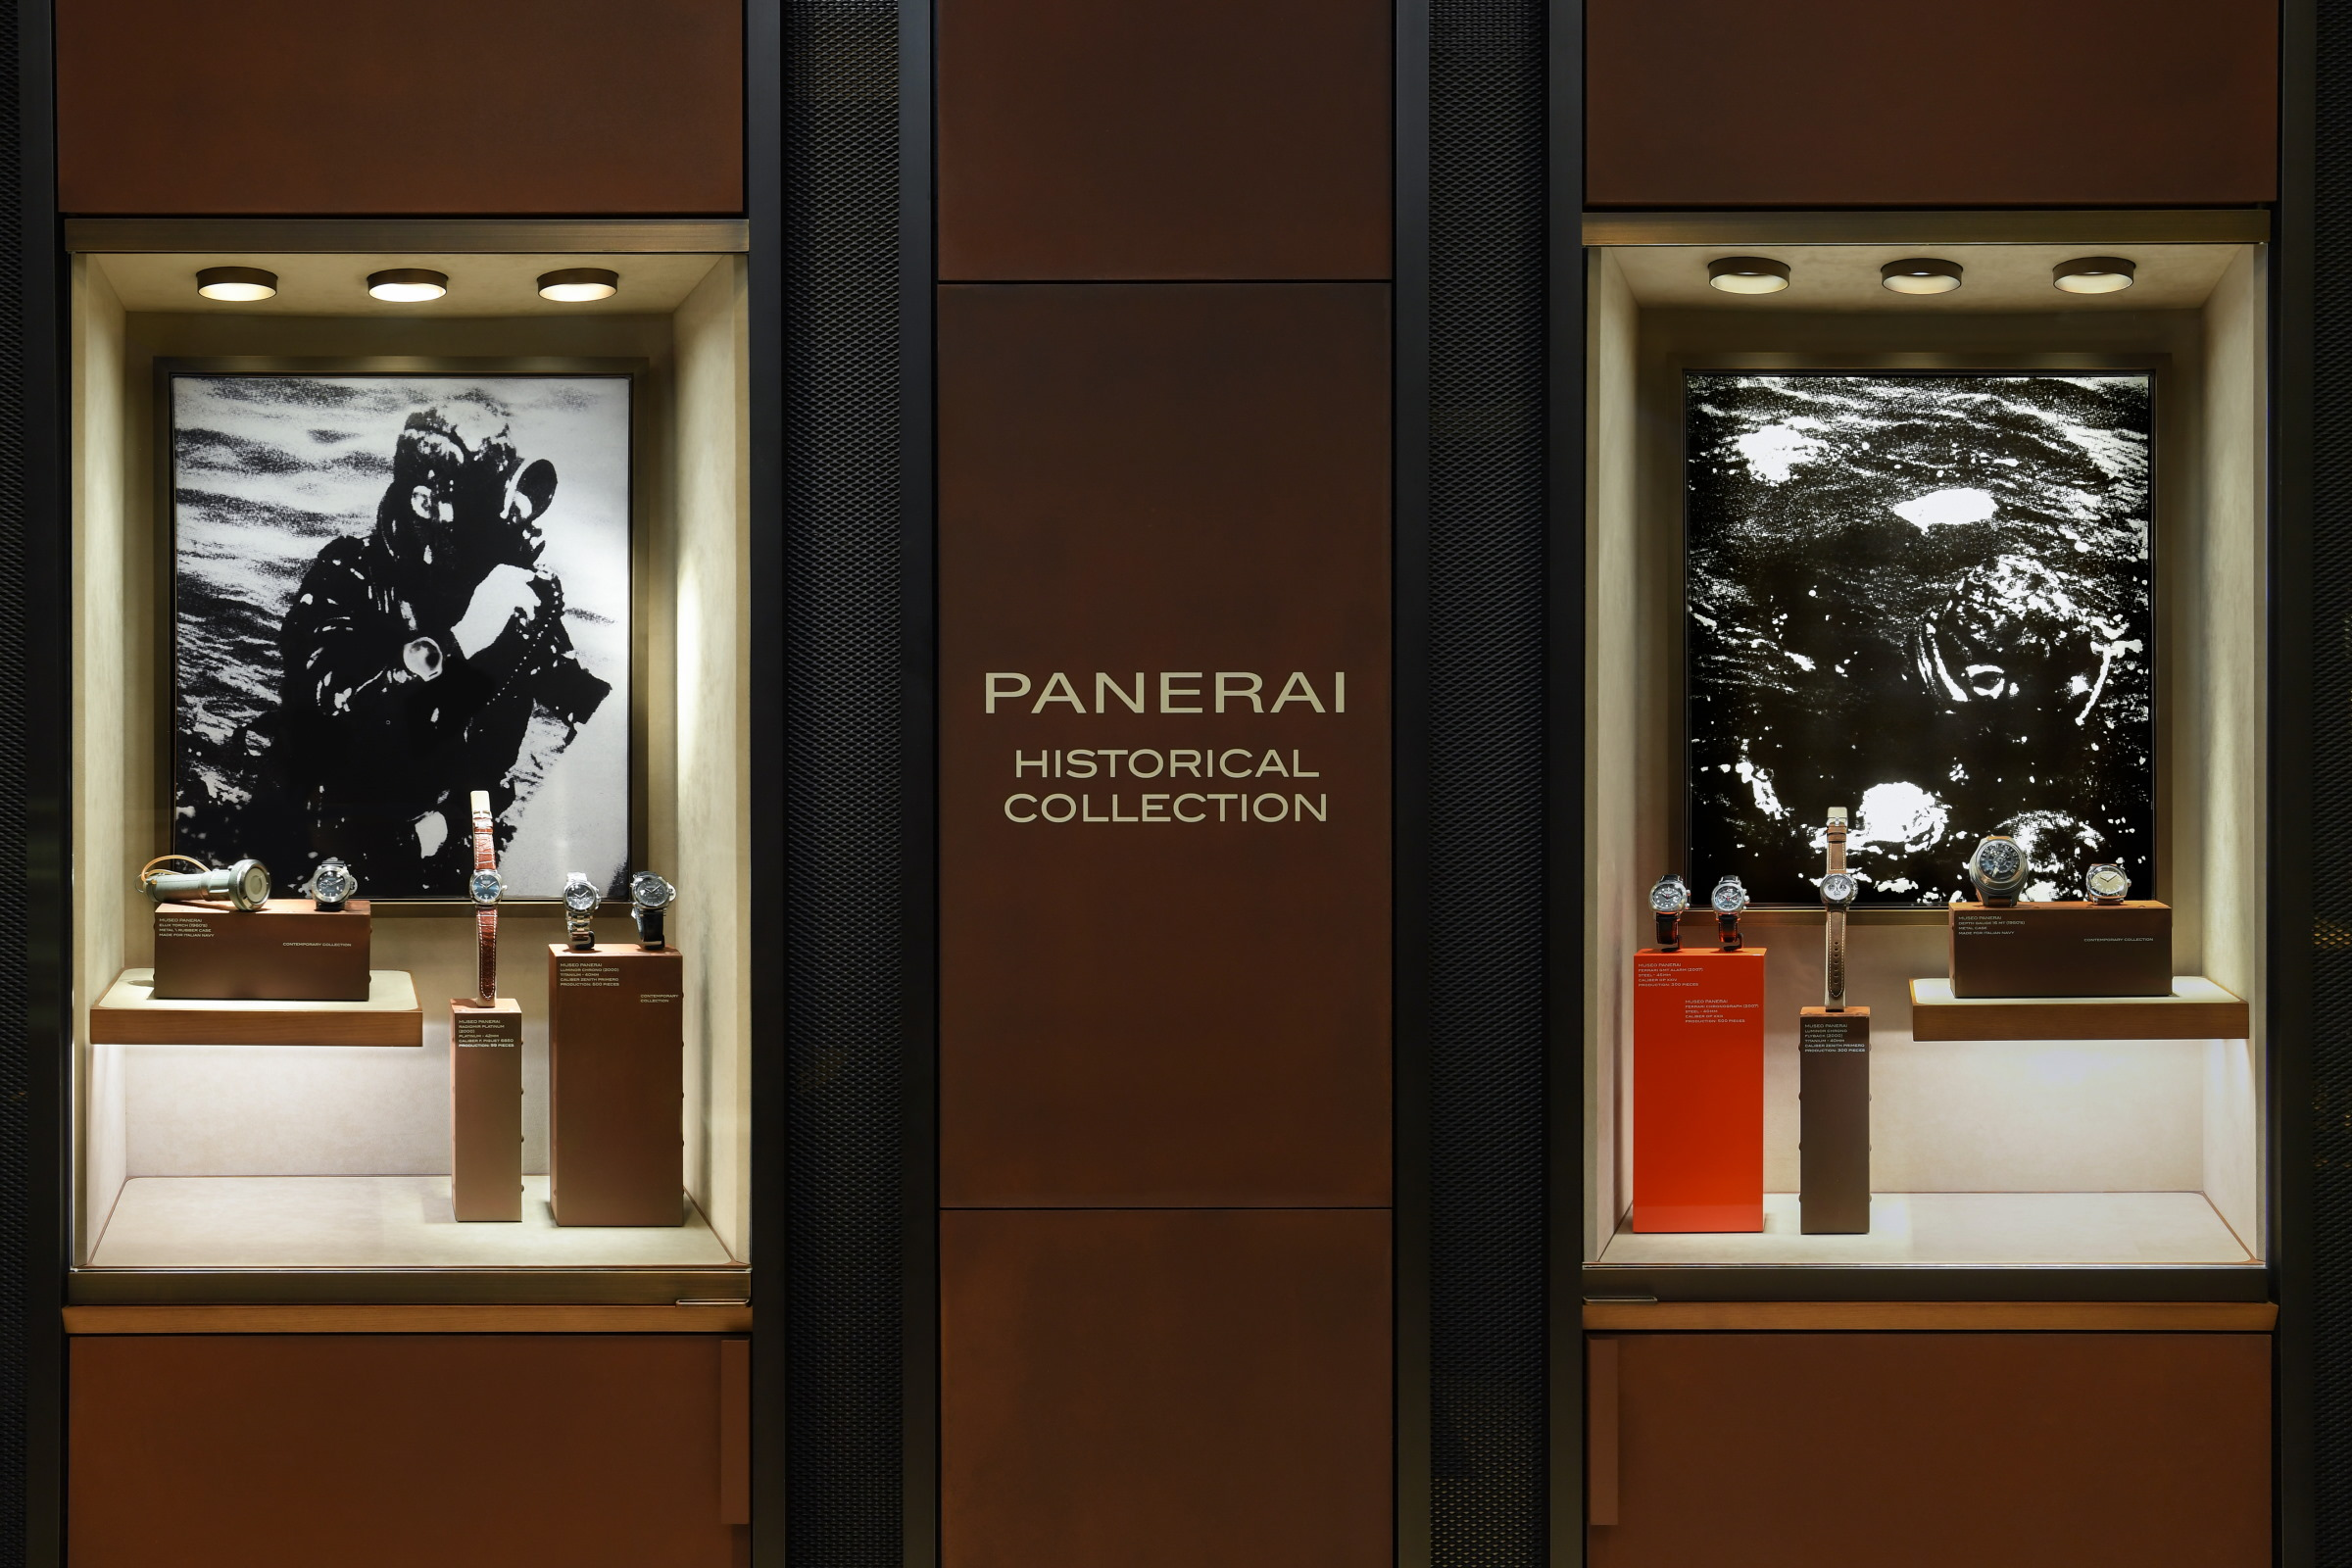 Panerai Unveils Its Historical Collection In Several Boutiques Across The World Including Singapore